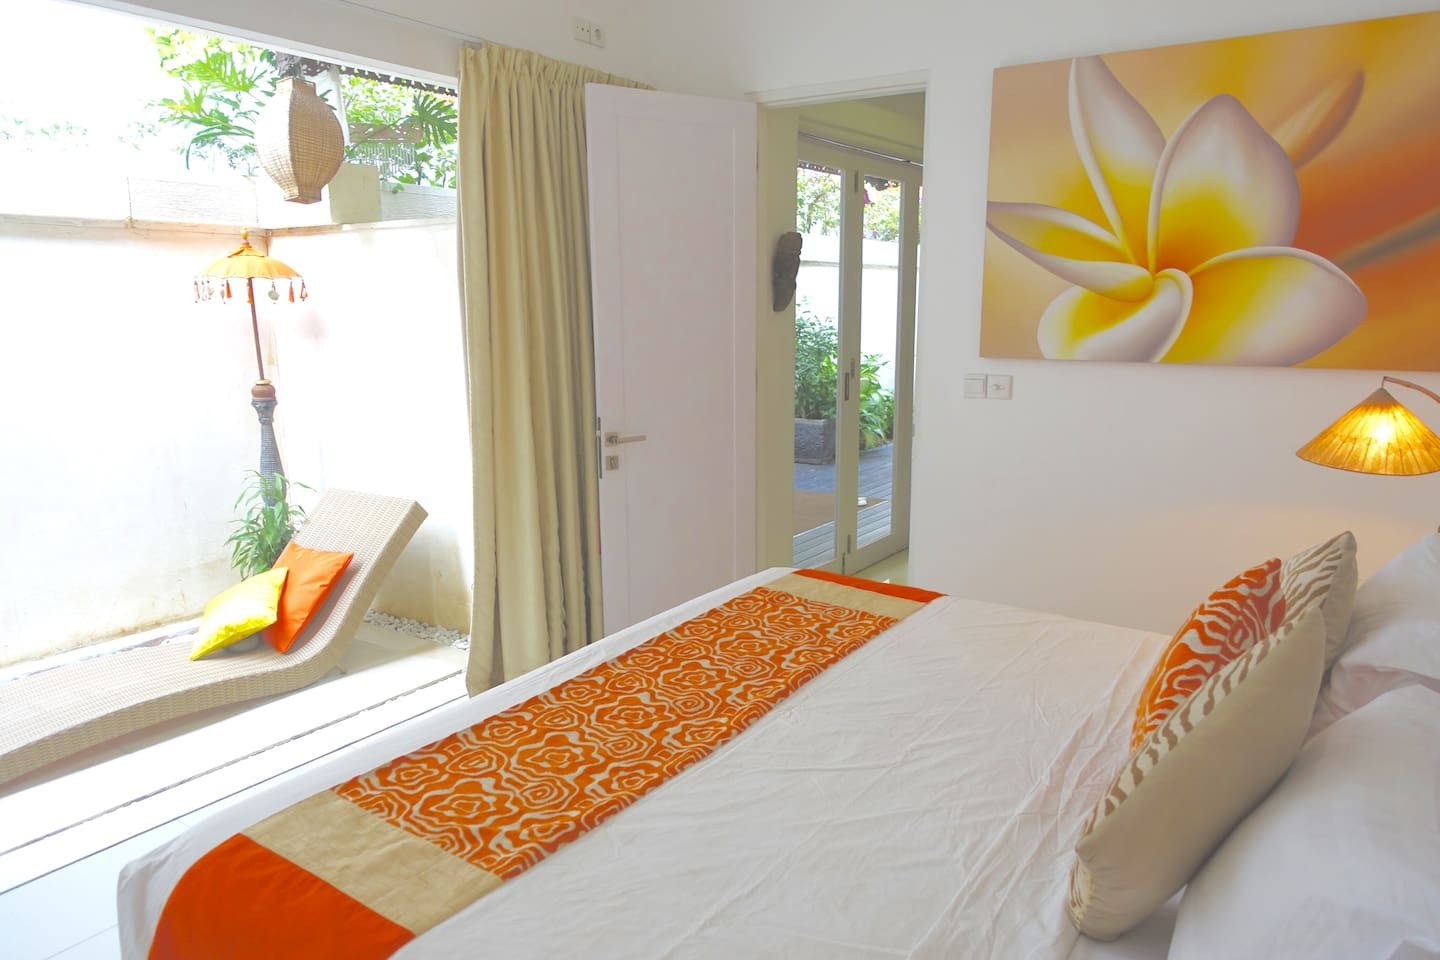 BED 1  King size  bedroom, A/C,  WI FI, celling fan, Private out door sun baking/relaxation area, out door ensuite bathroom, walk in robe, large safety deposit box, hairdryer, bathroom amenities.